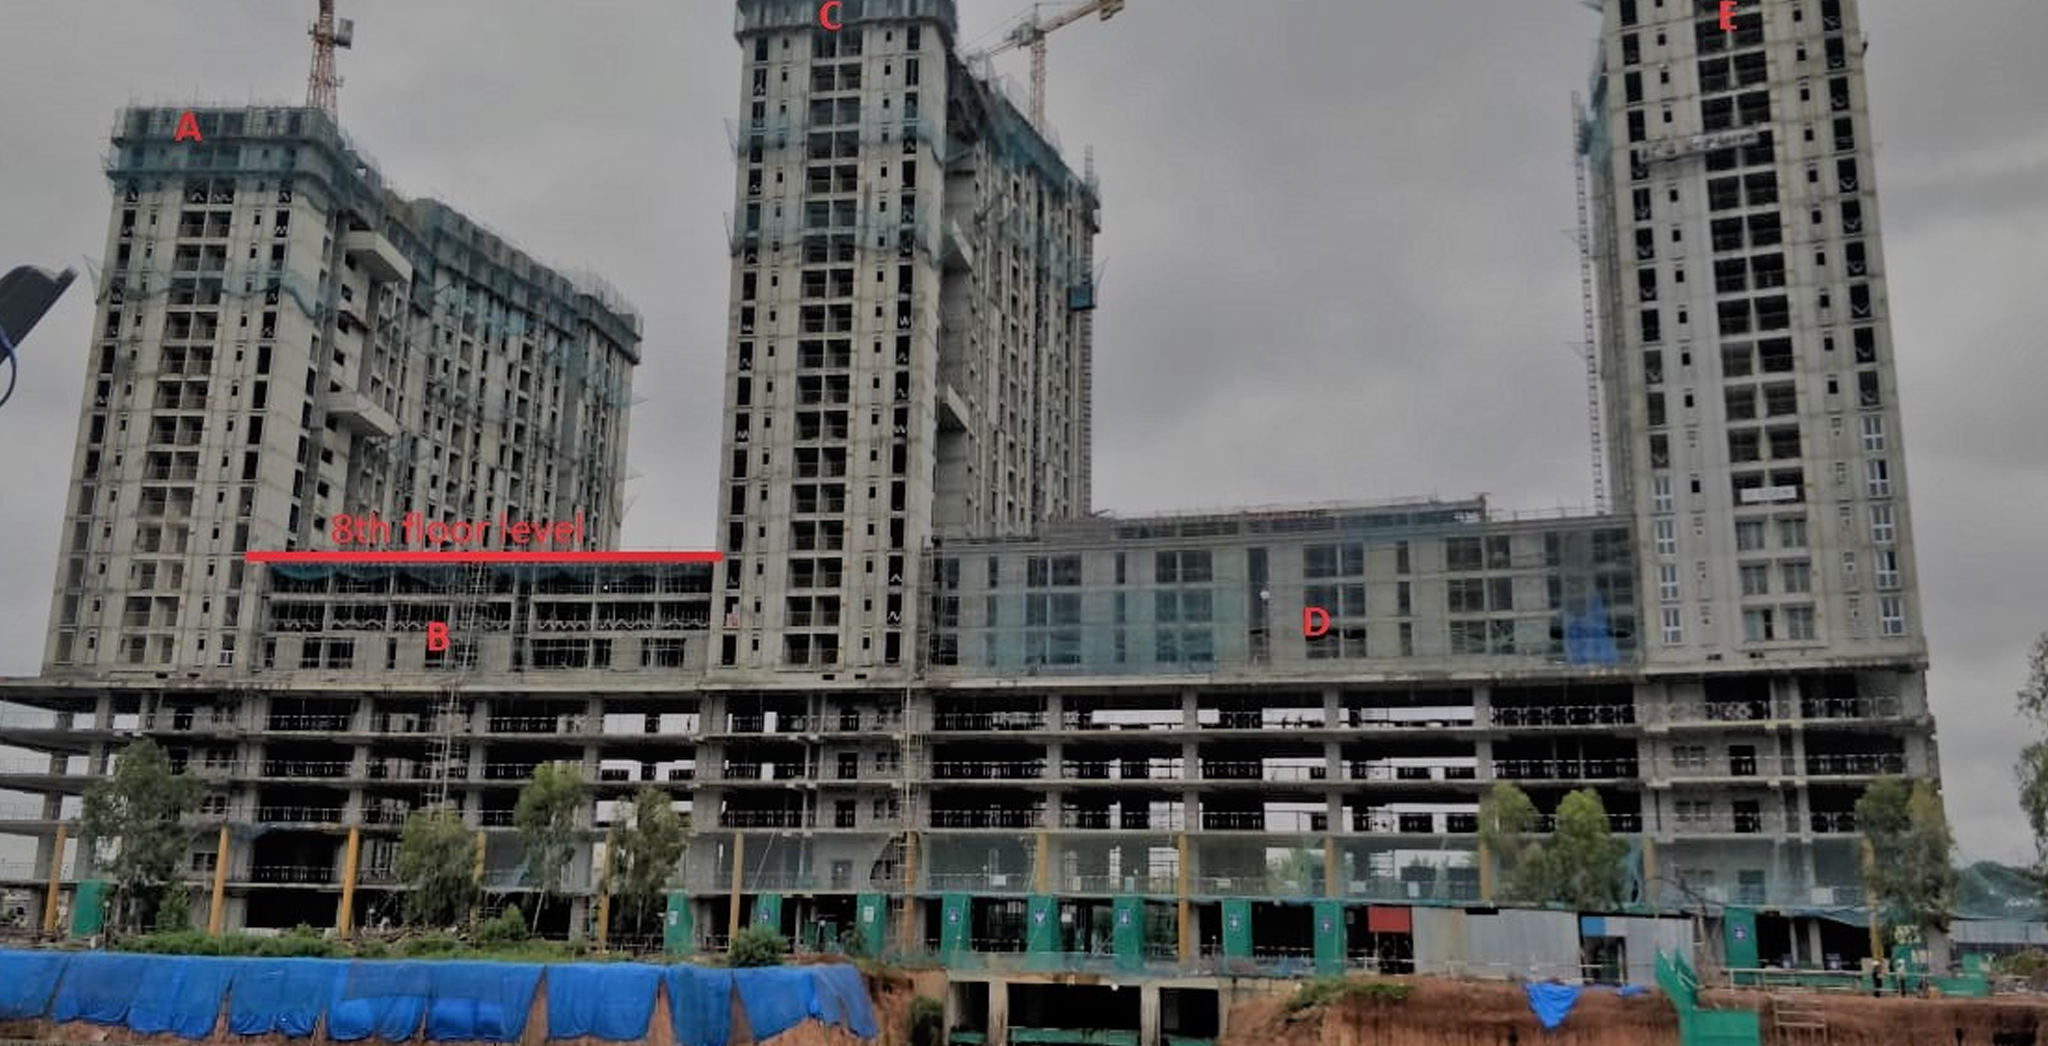 Aug 2021 - Eden Tower B: Completion of 8th floor slab